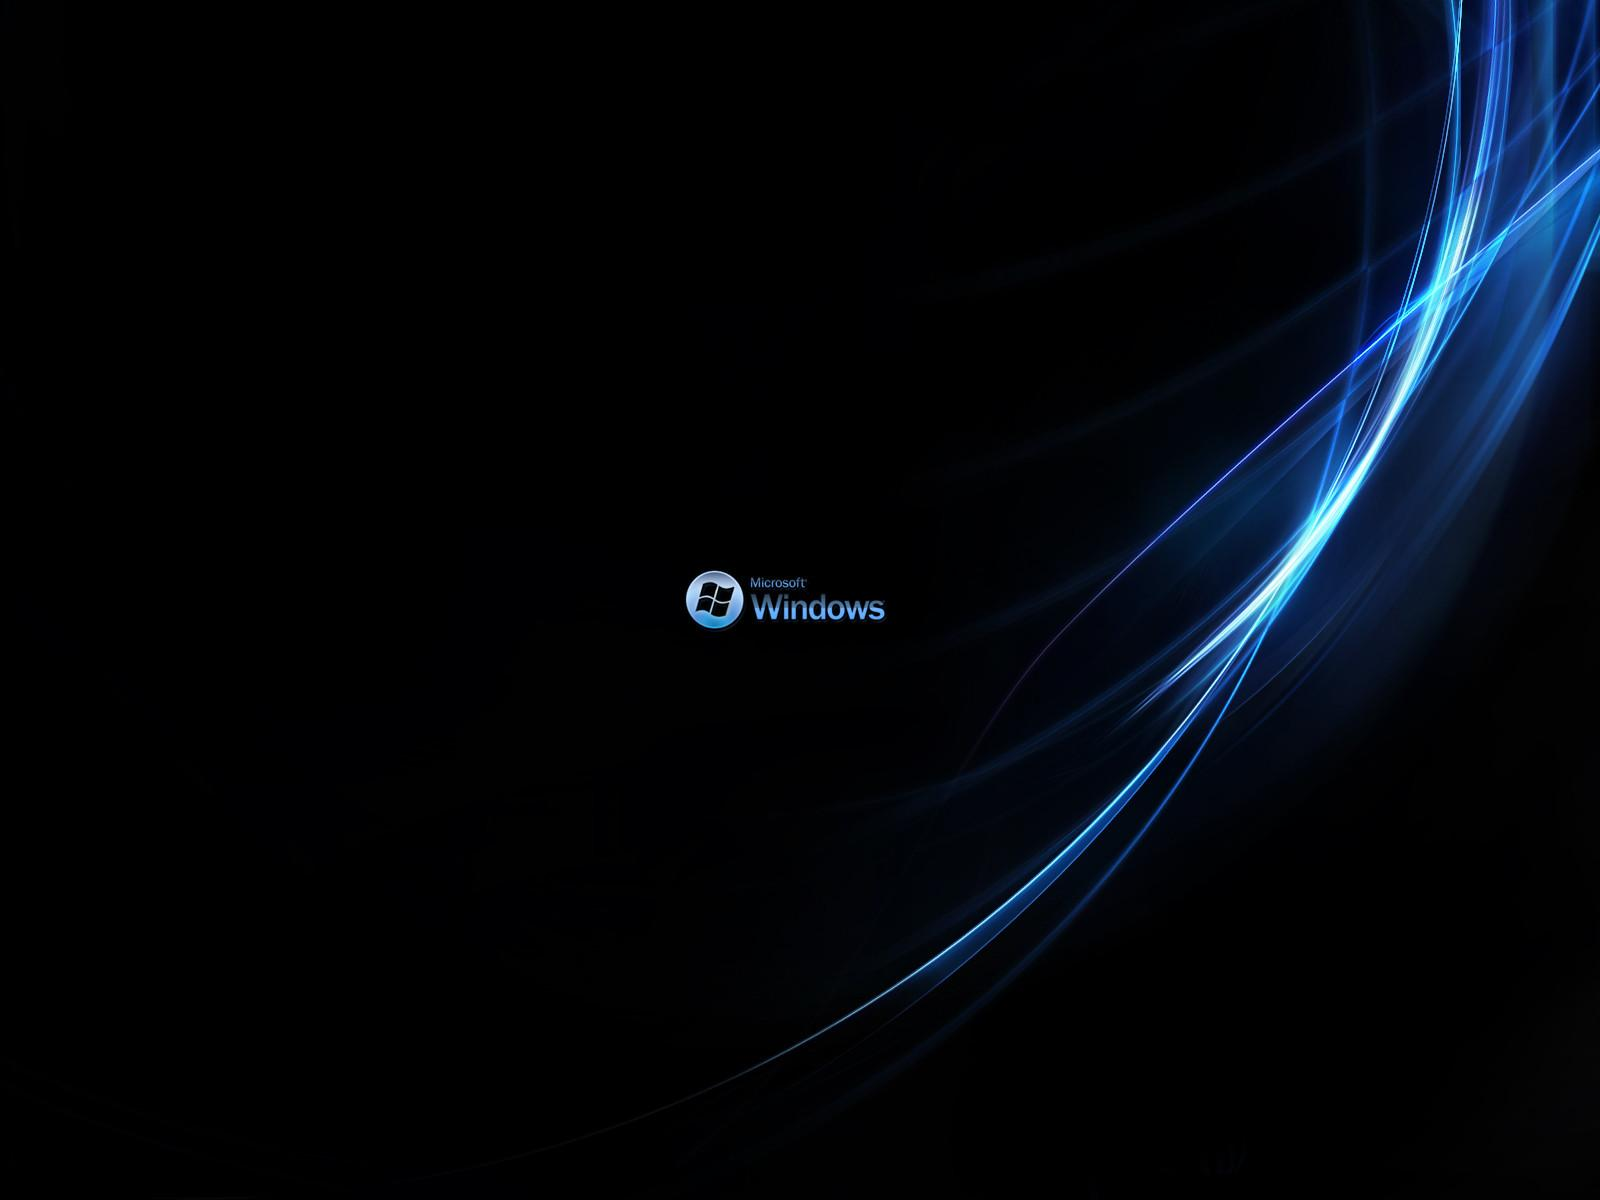 3D Windows Logo Wallpapers HQ Windows 7 Windows XP Windows 8 1600x1200